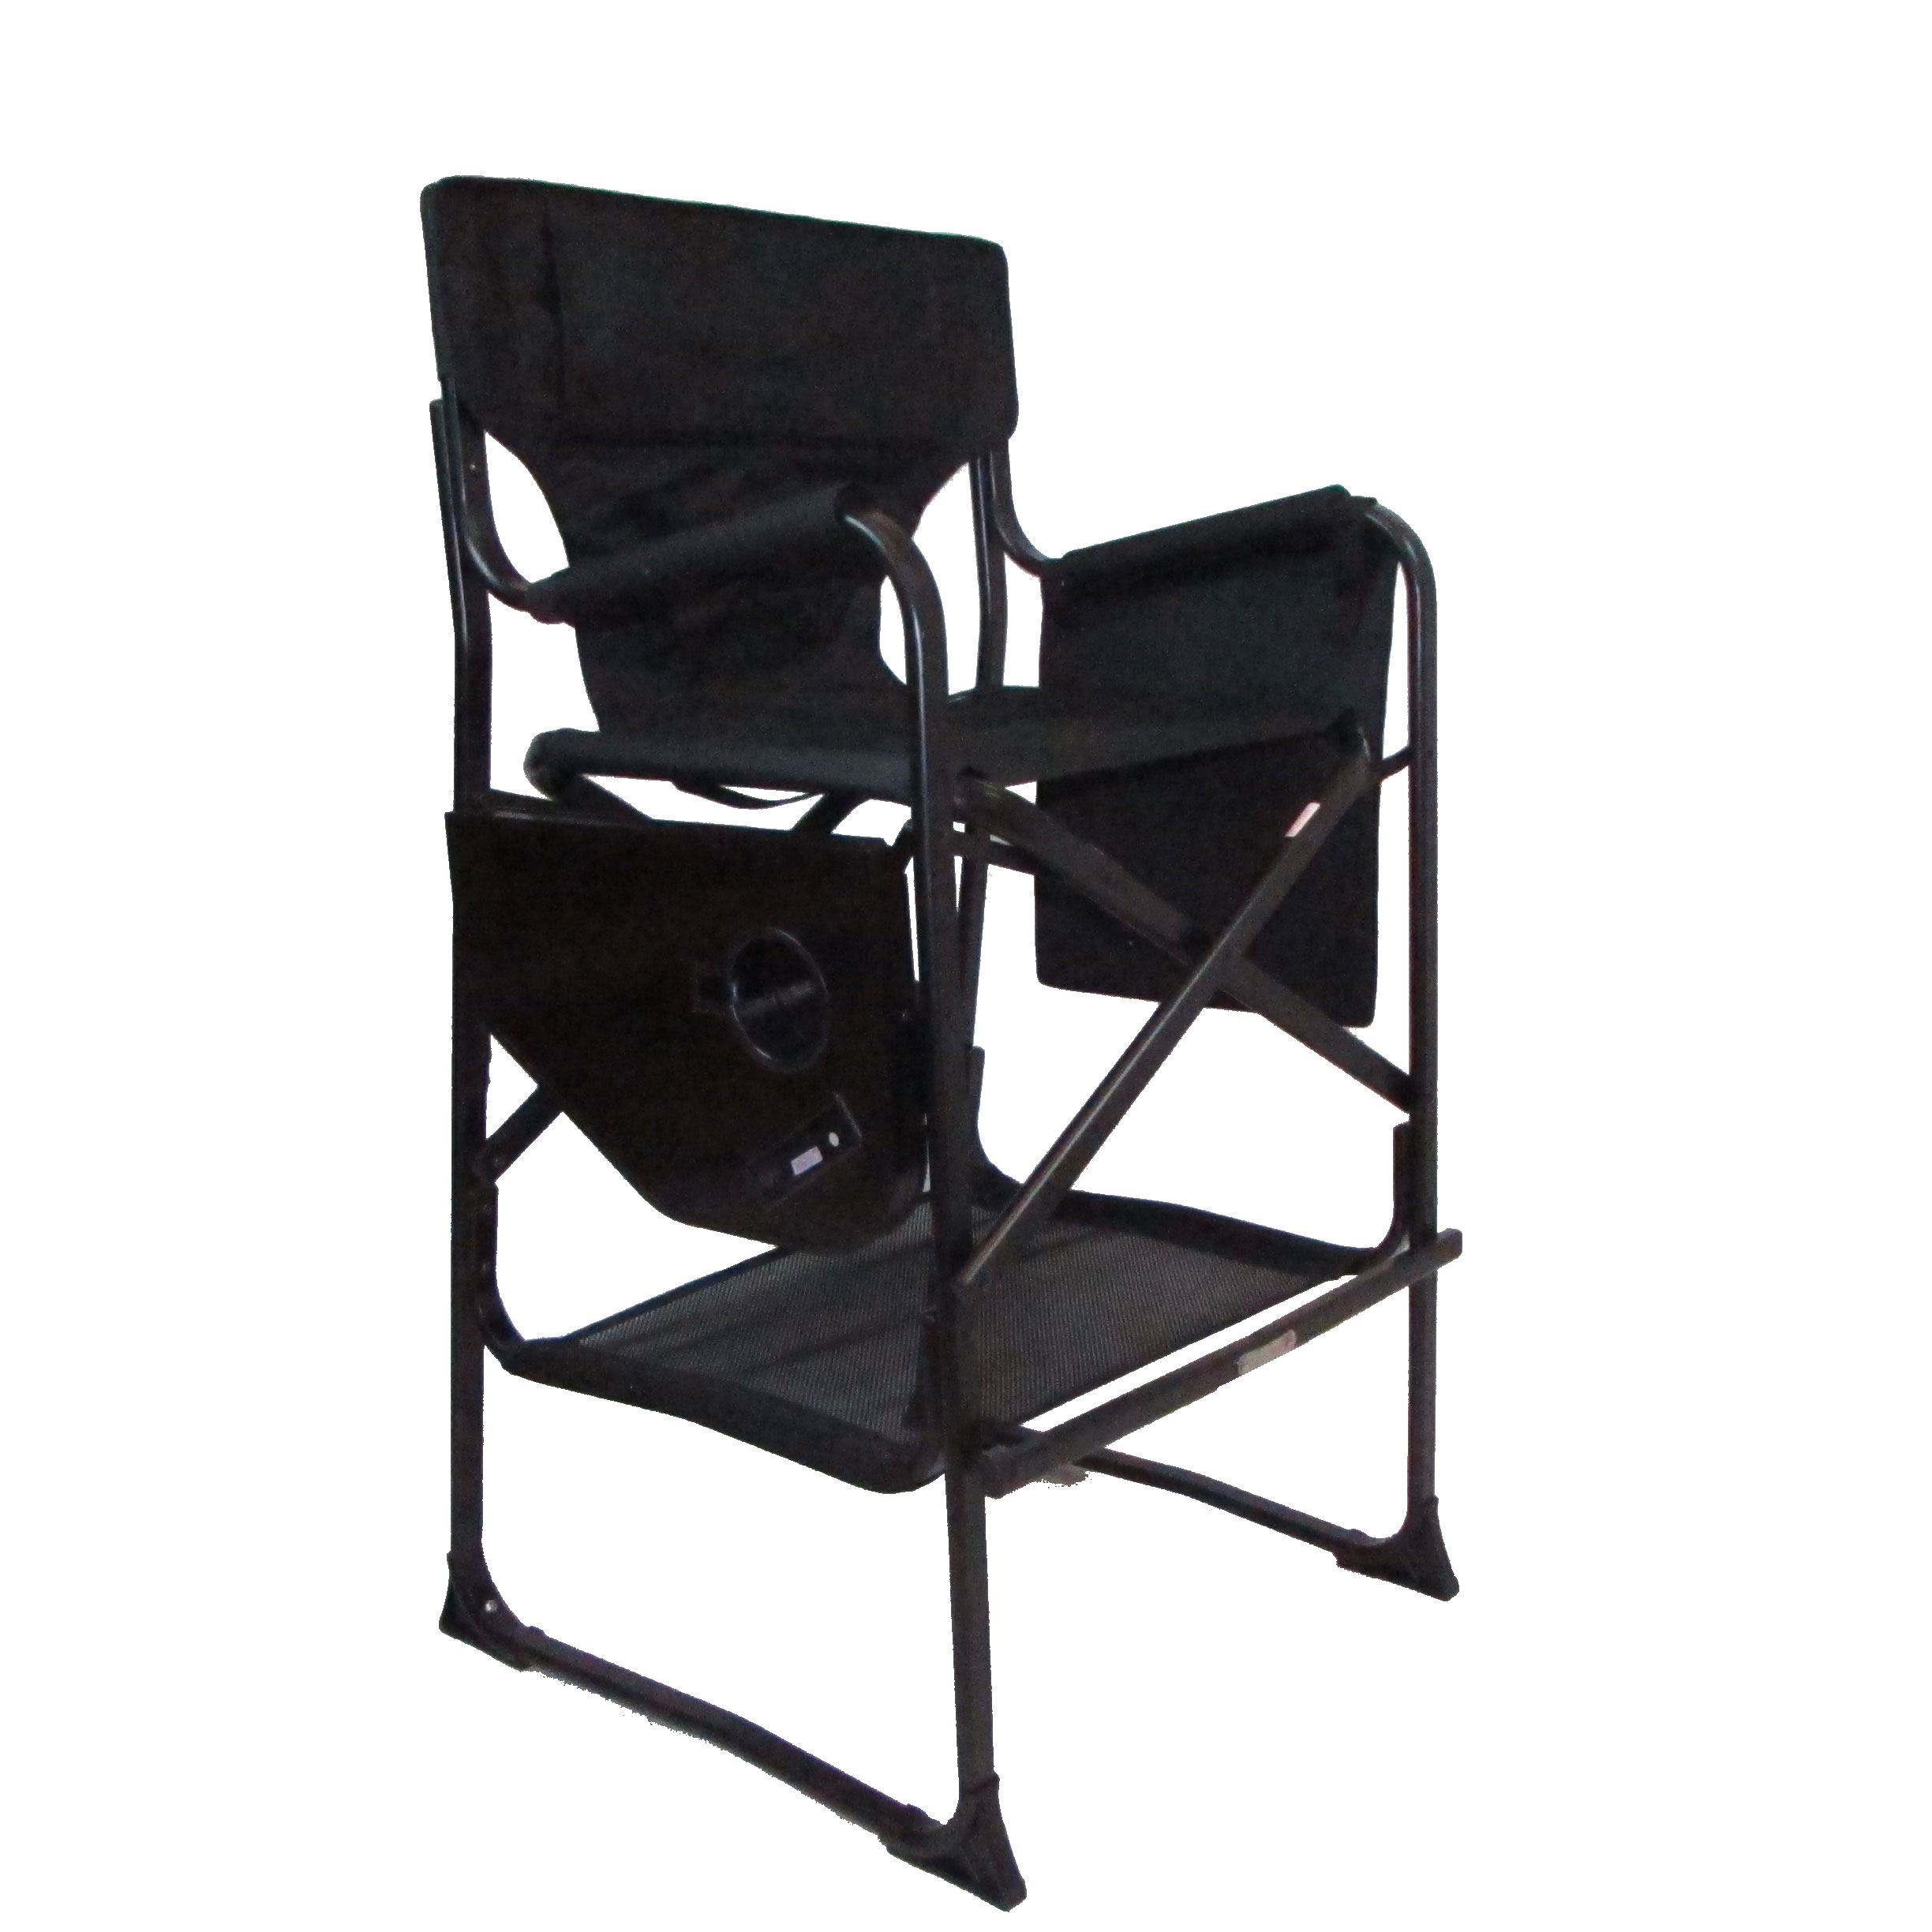 The Professional Tall Directors Chair By Pacific Imports